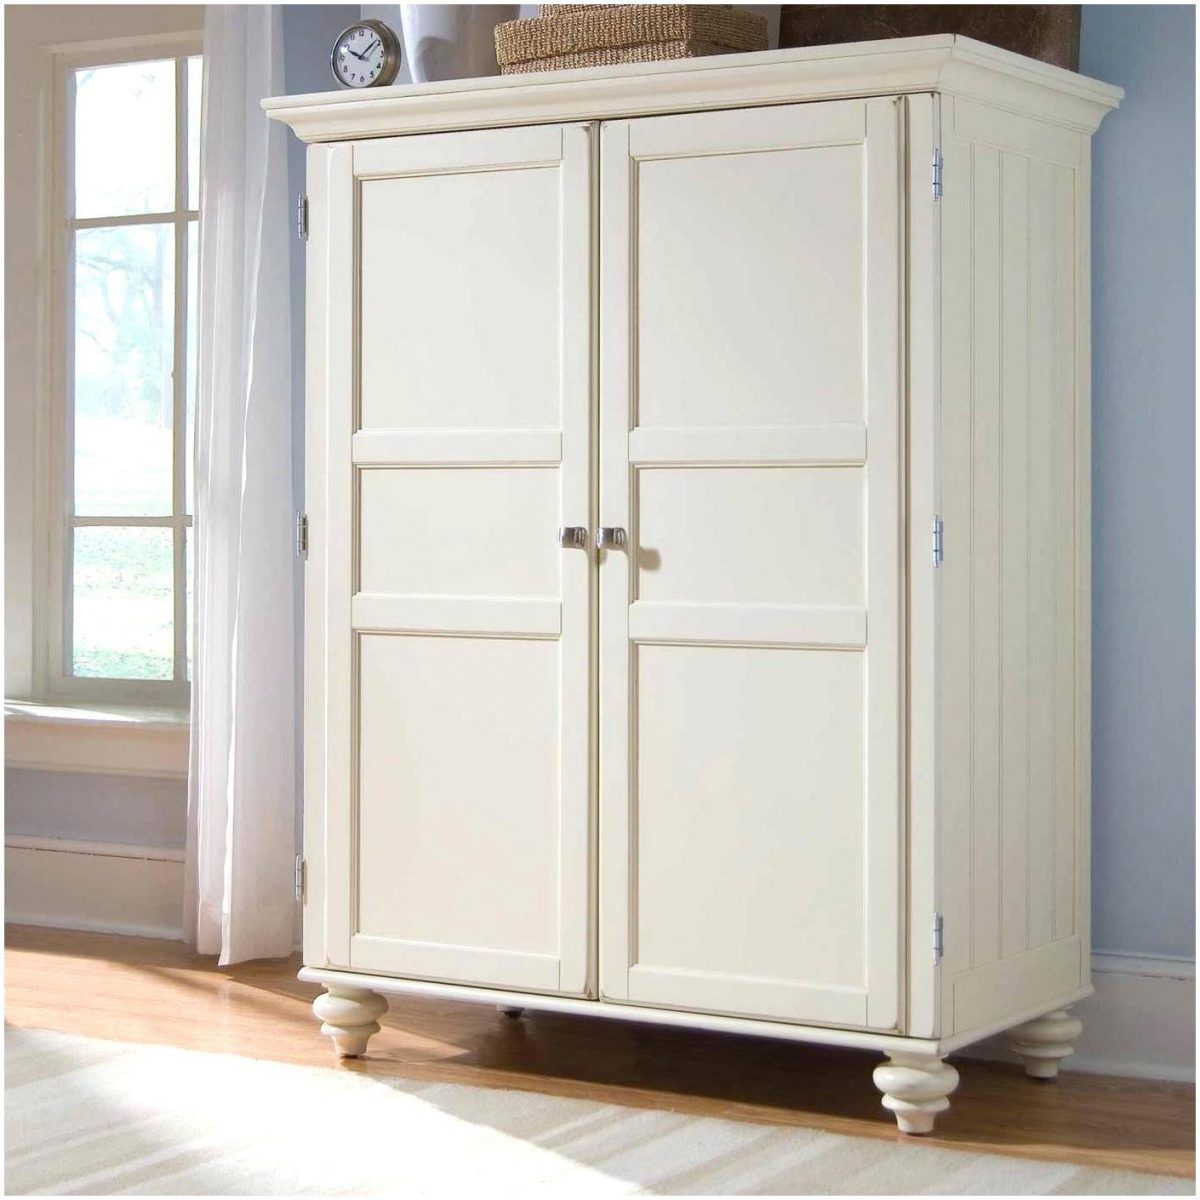 Armoire Plans Beautiful Imposing Decoration ashley Furniture